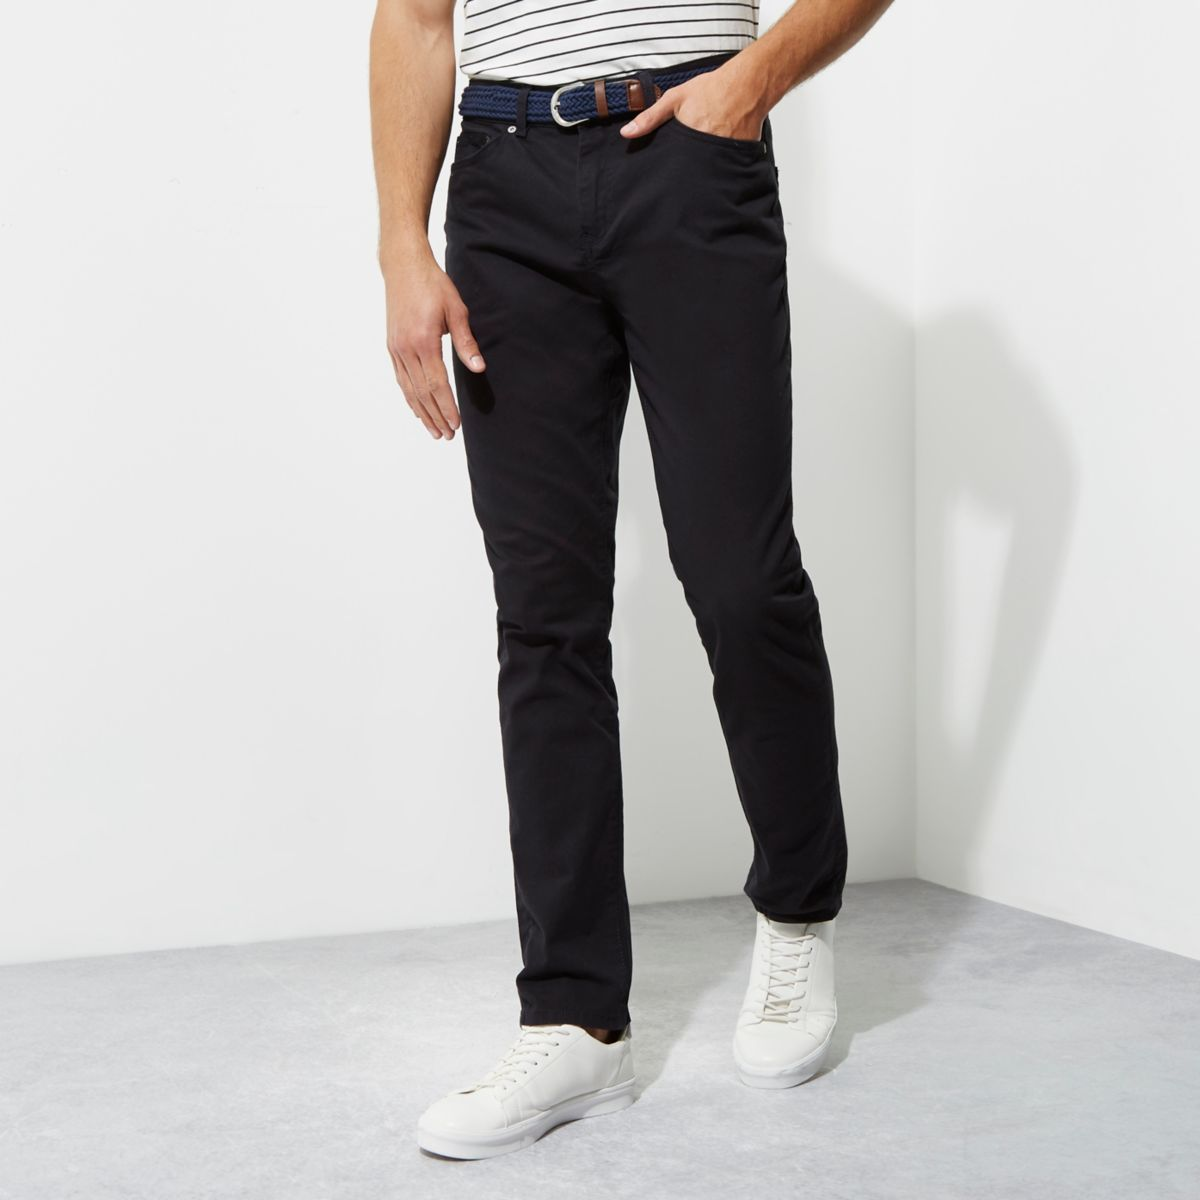 Navy slim fit belted chino pants